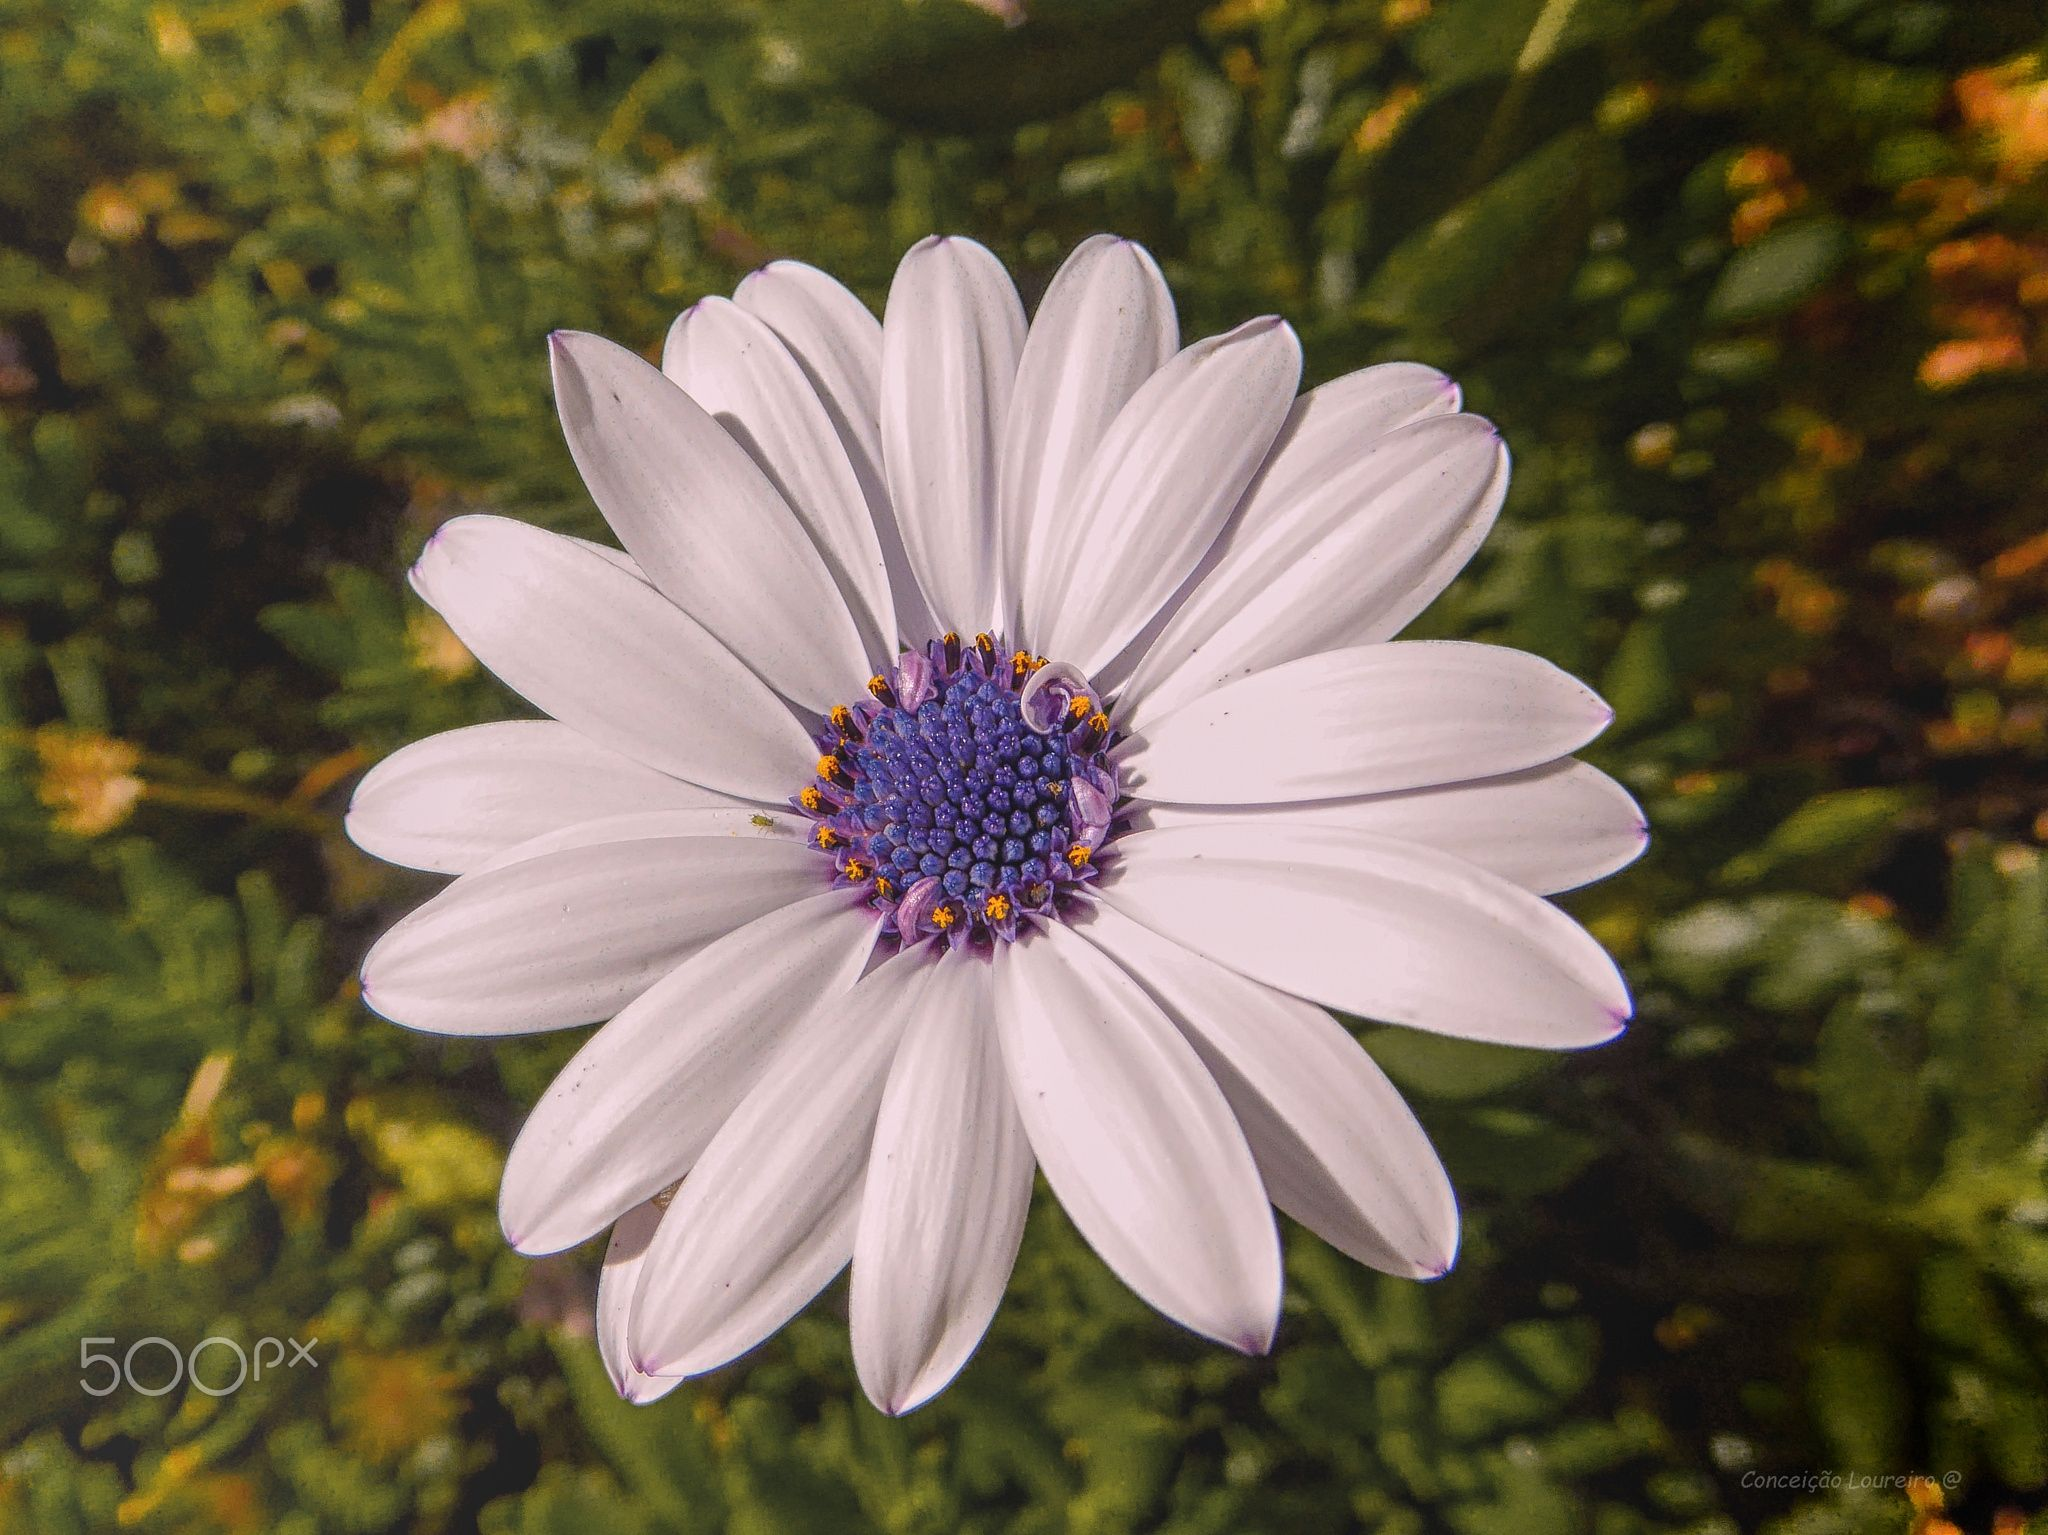 White daisy a daisy in the middle of a meadow the autumn white daisy a daisy in the middle of a meadow the autumn sunshine intensely izmirmasajfo